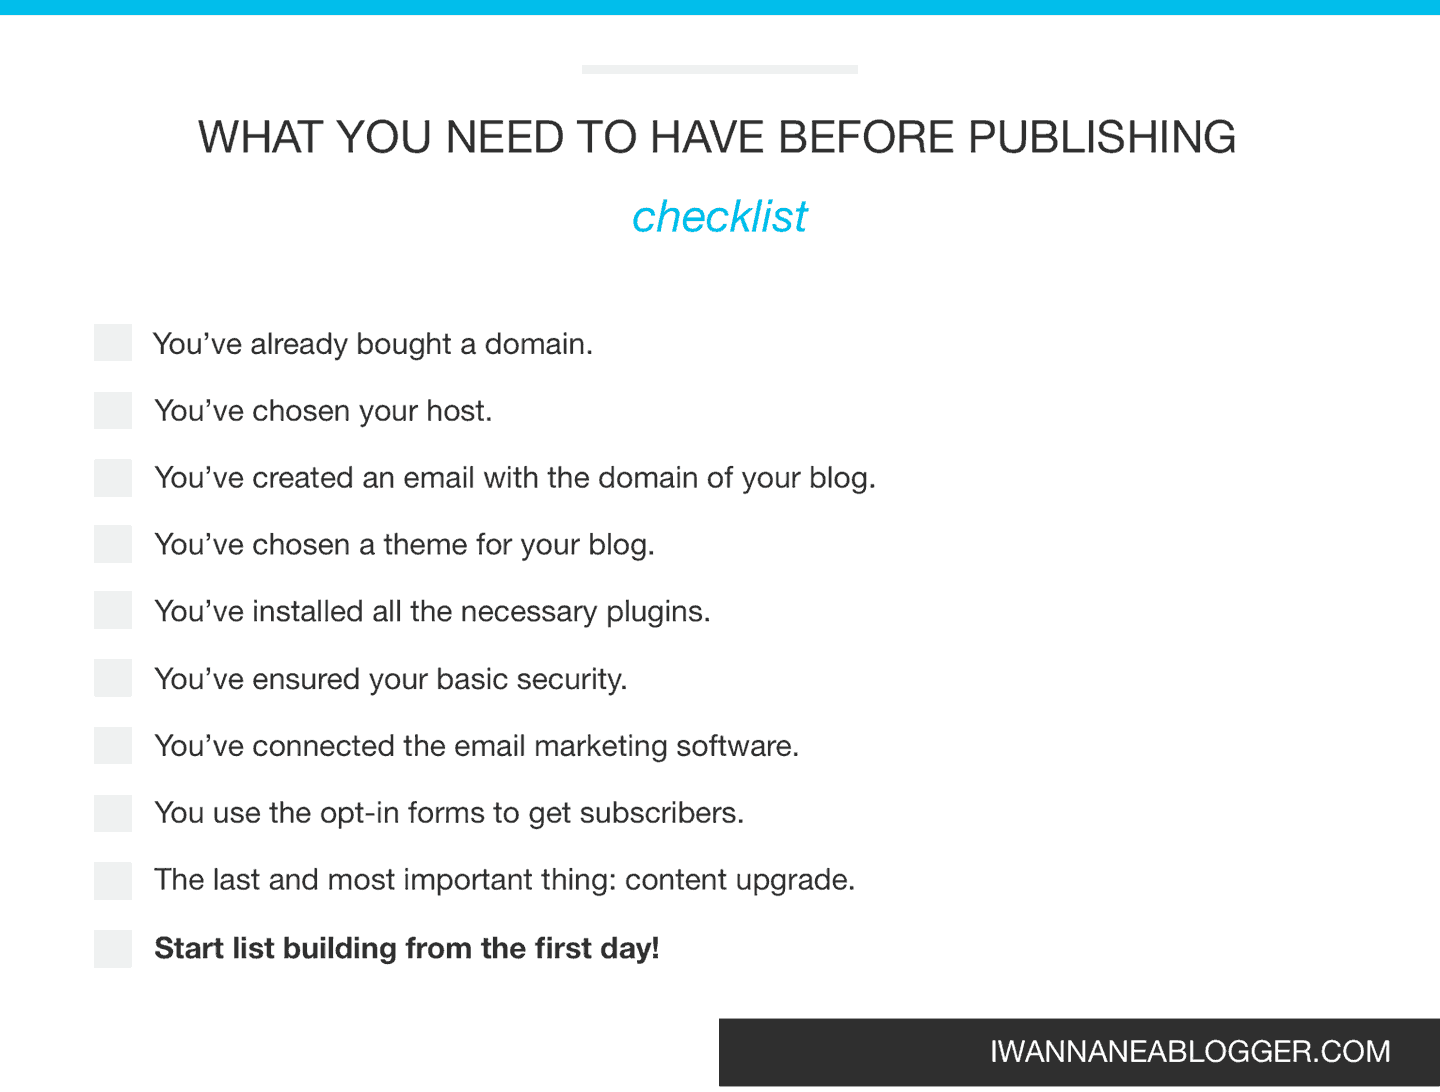 What You Need to Have Before Publishing [Checklist]